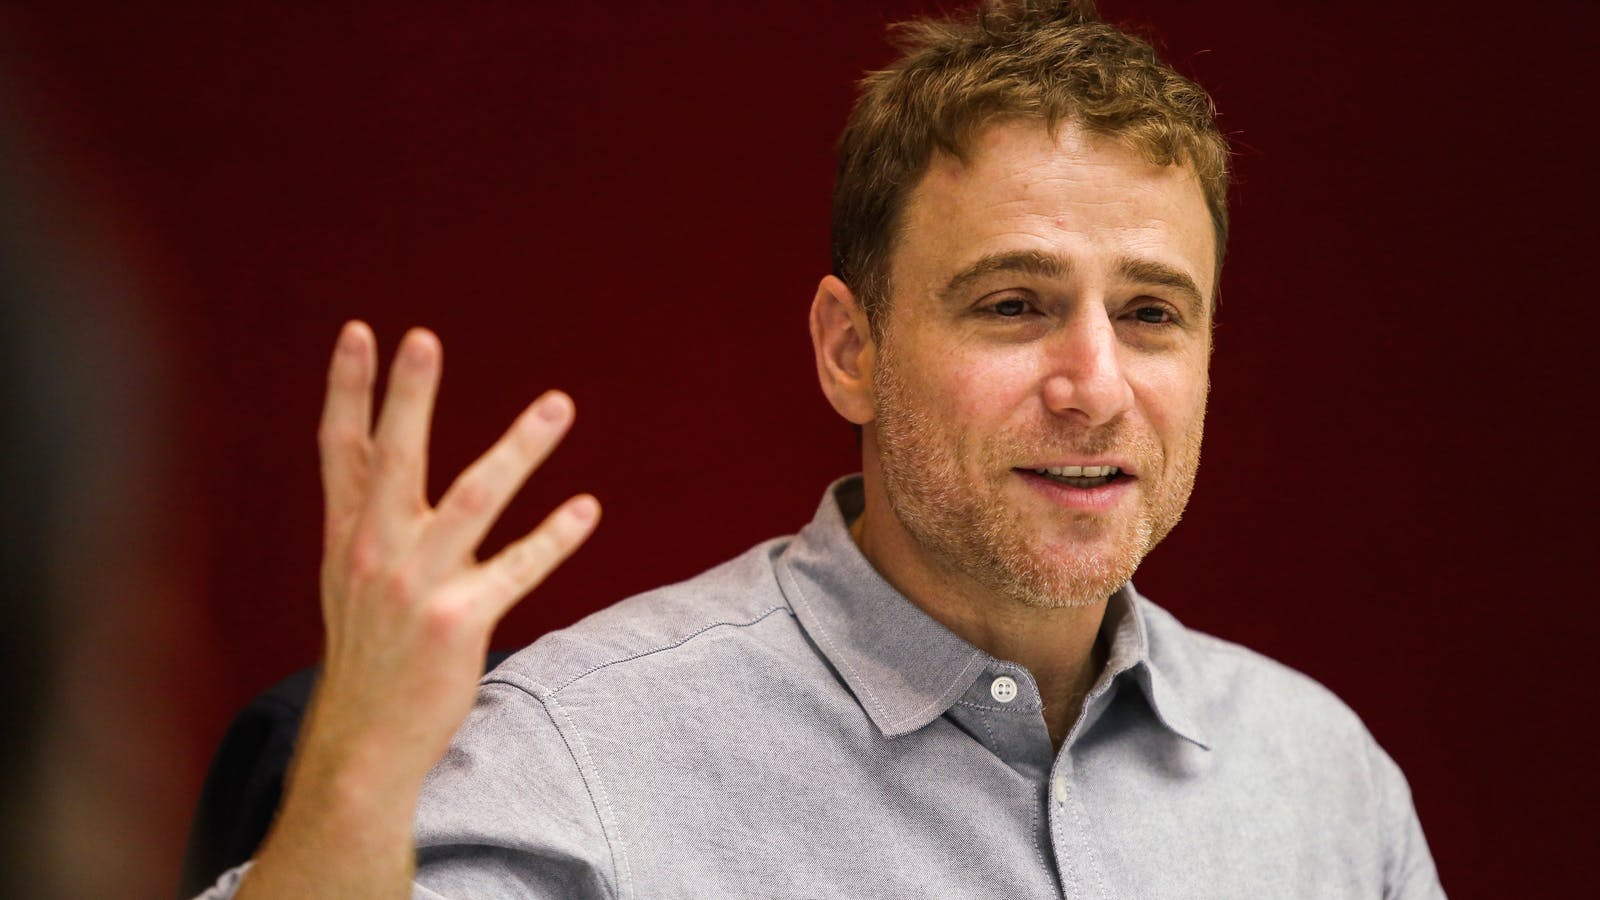 Slack CEO Stewart Butterfield. Photo by Bloomberg.